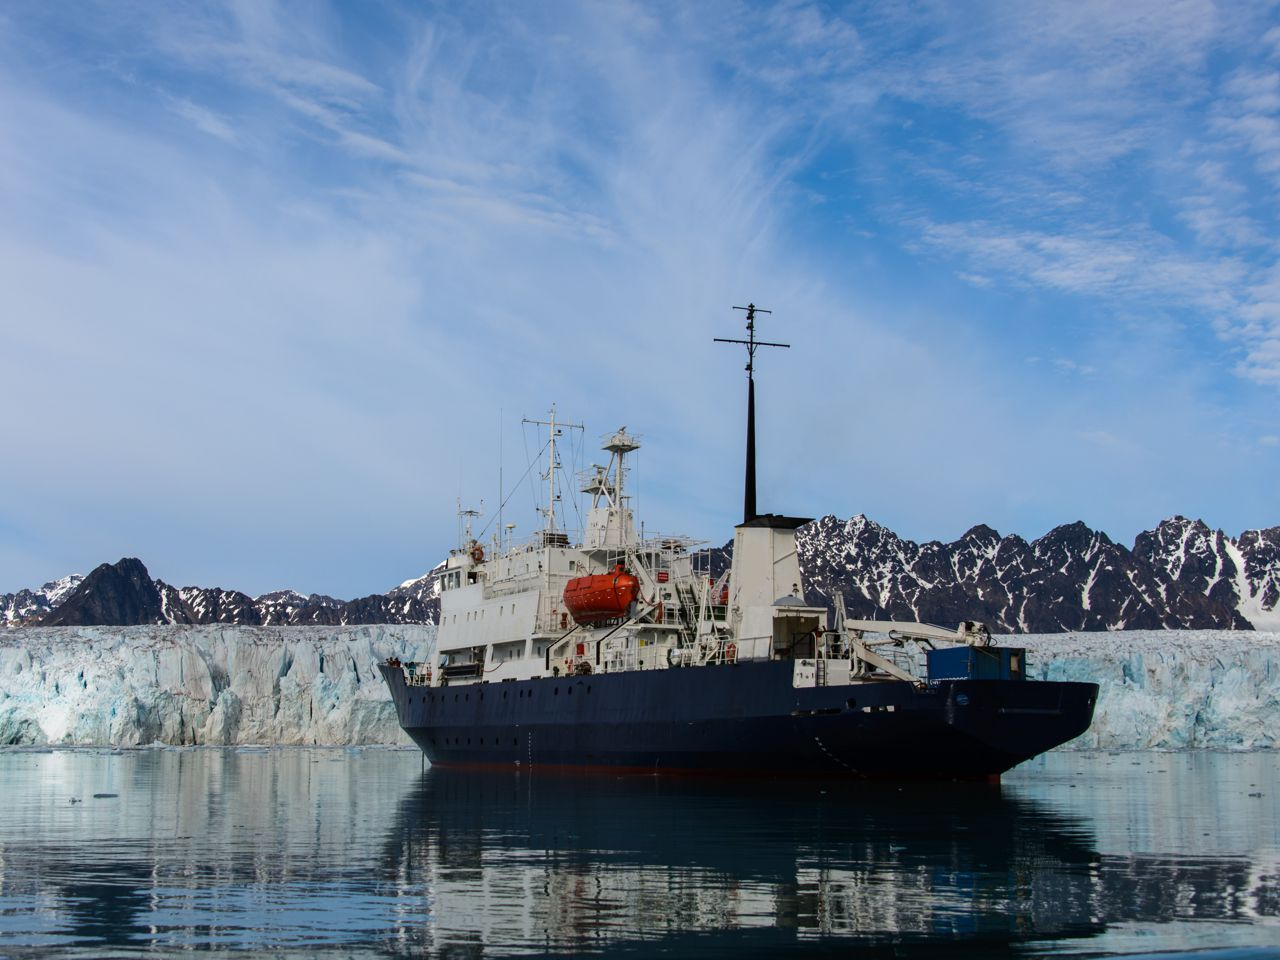 Icebreaker on the water in front of ice and mountain landscape